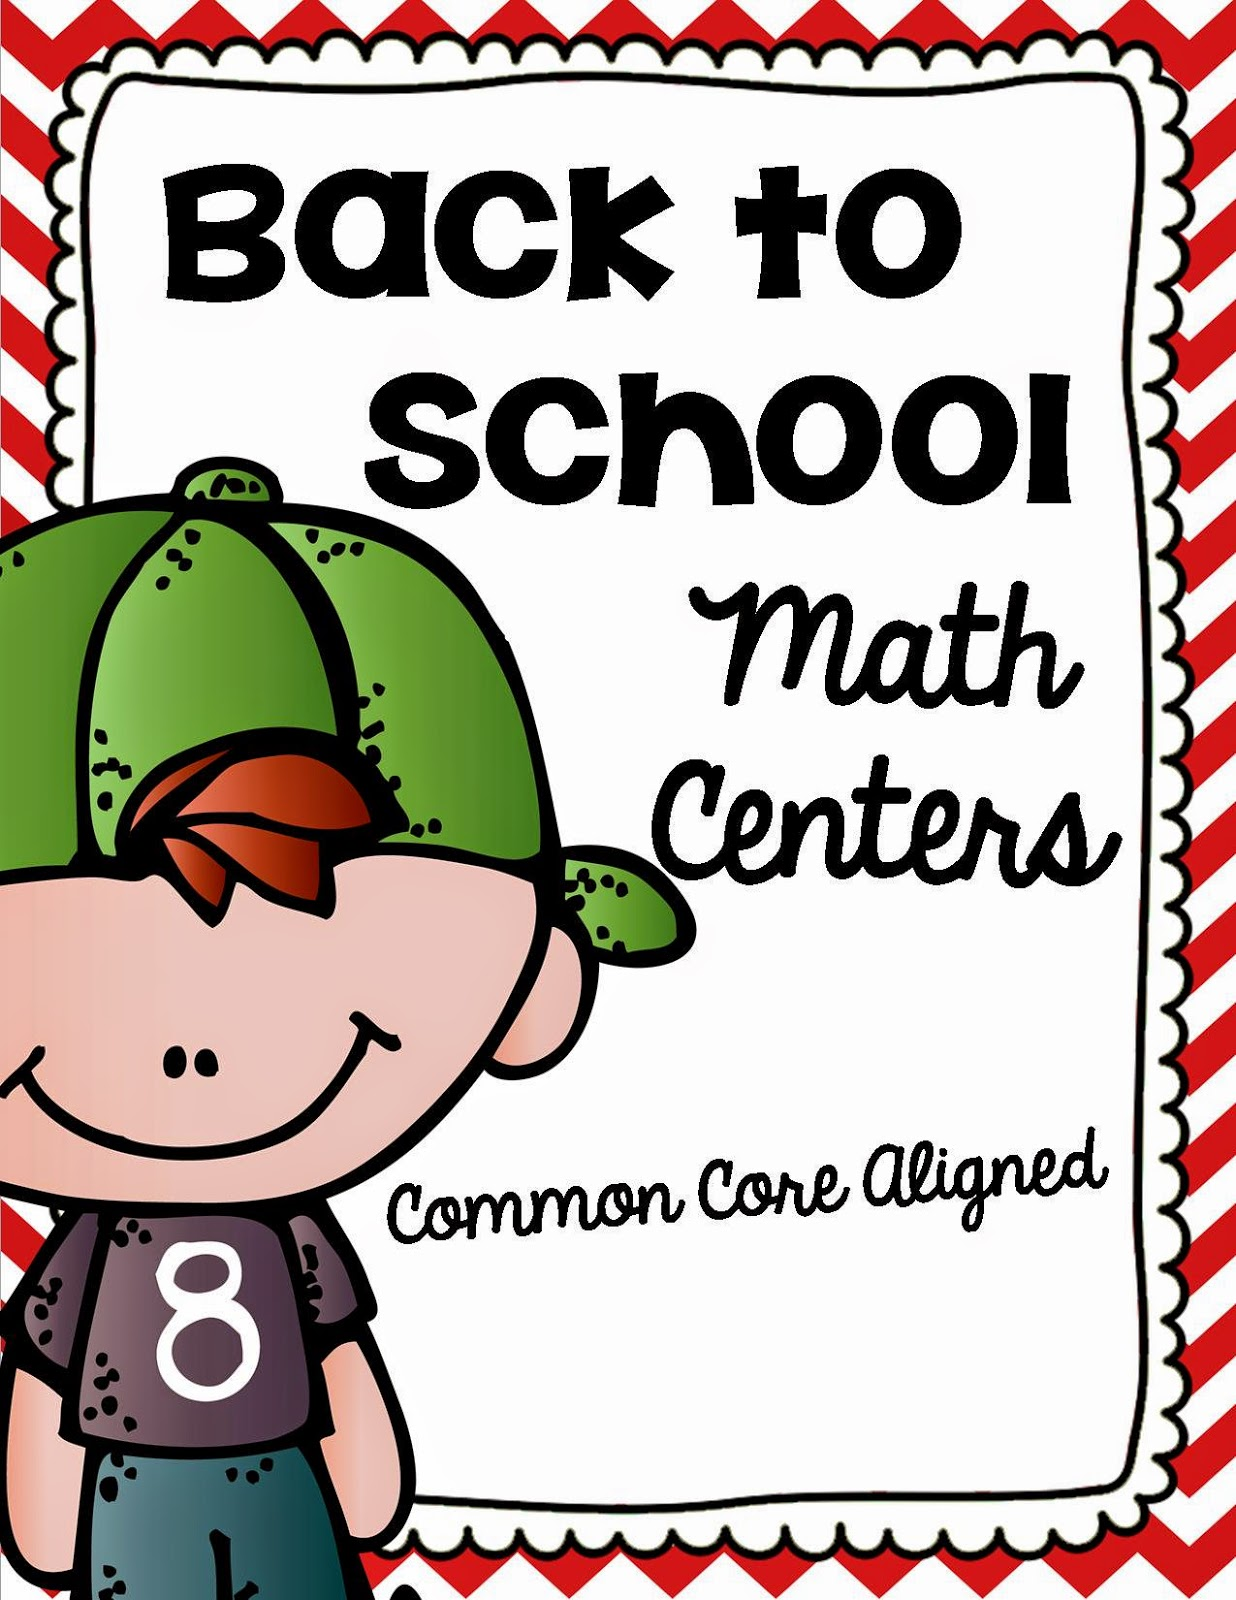 http://www.teacherspayteachers.com/Product/Back-to-School-Common-Core-Math-Centers-281929